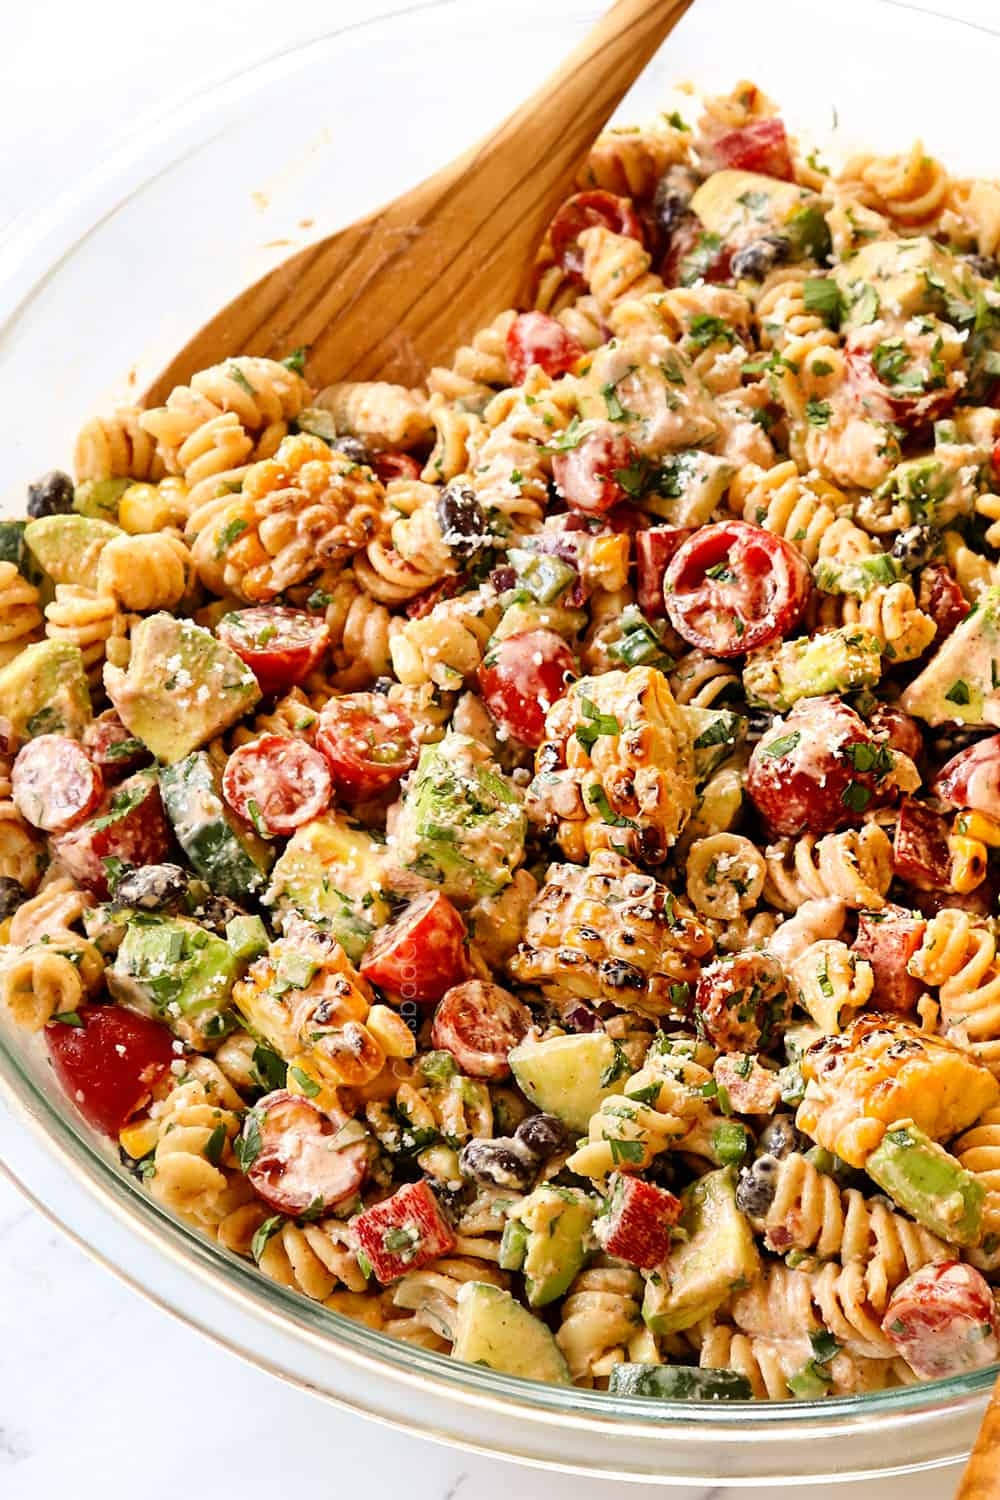 Mexican Pasta Salad in a glass bowl with wooden spoons